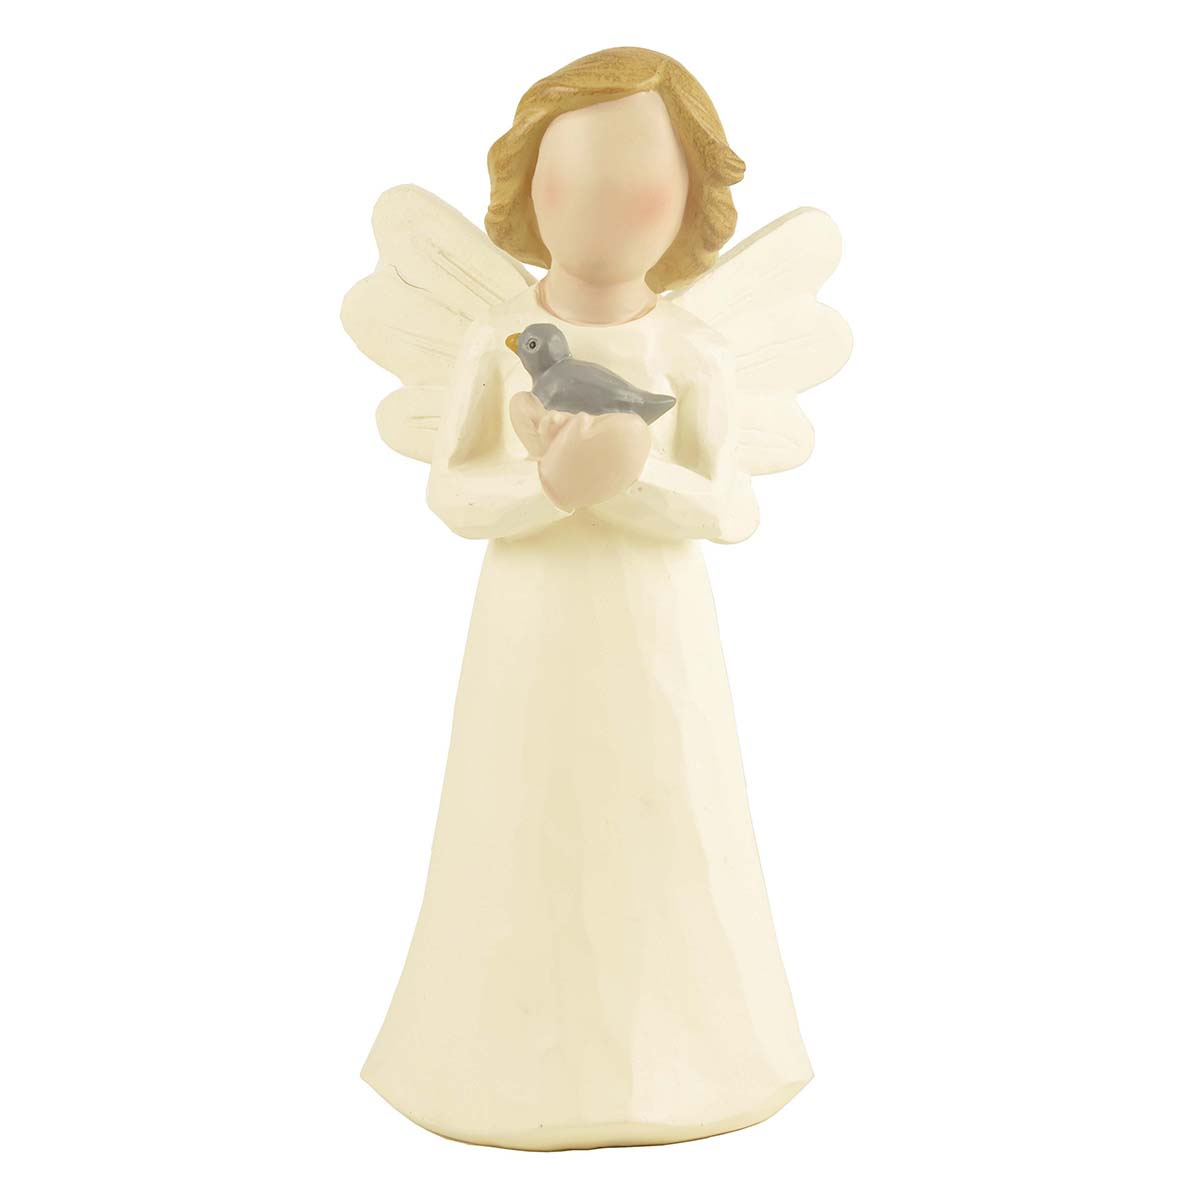 Ennas angels statues gifts vintage for ornaments-1